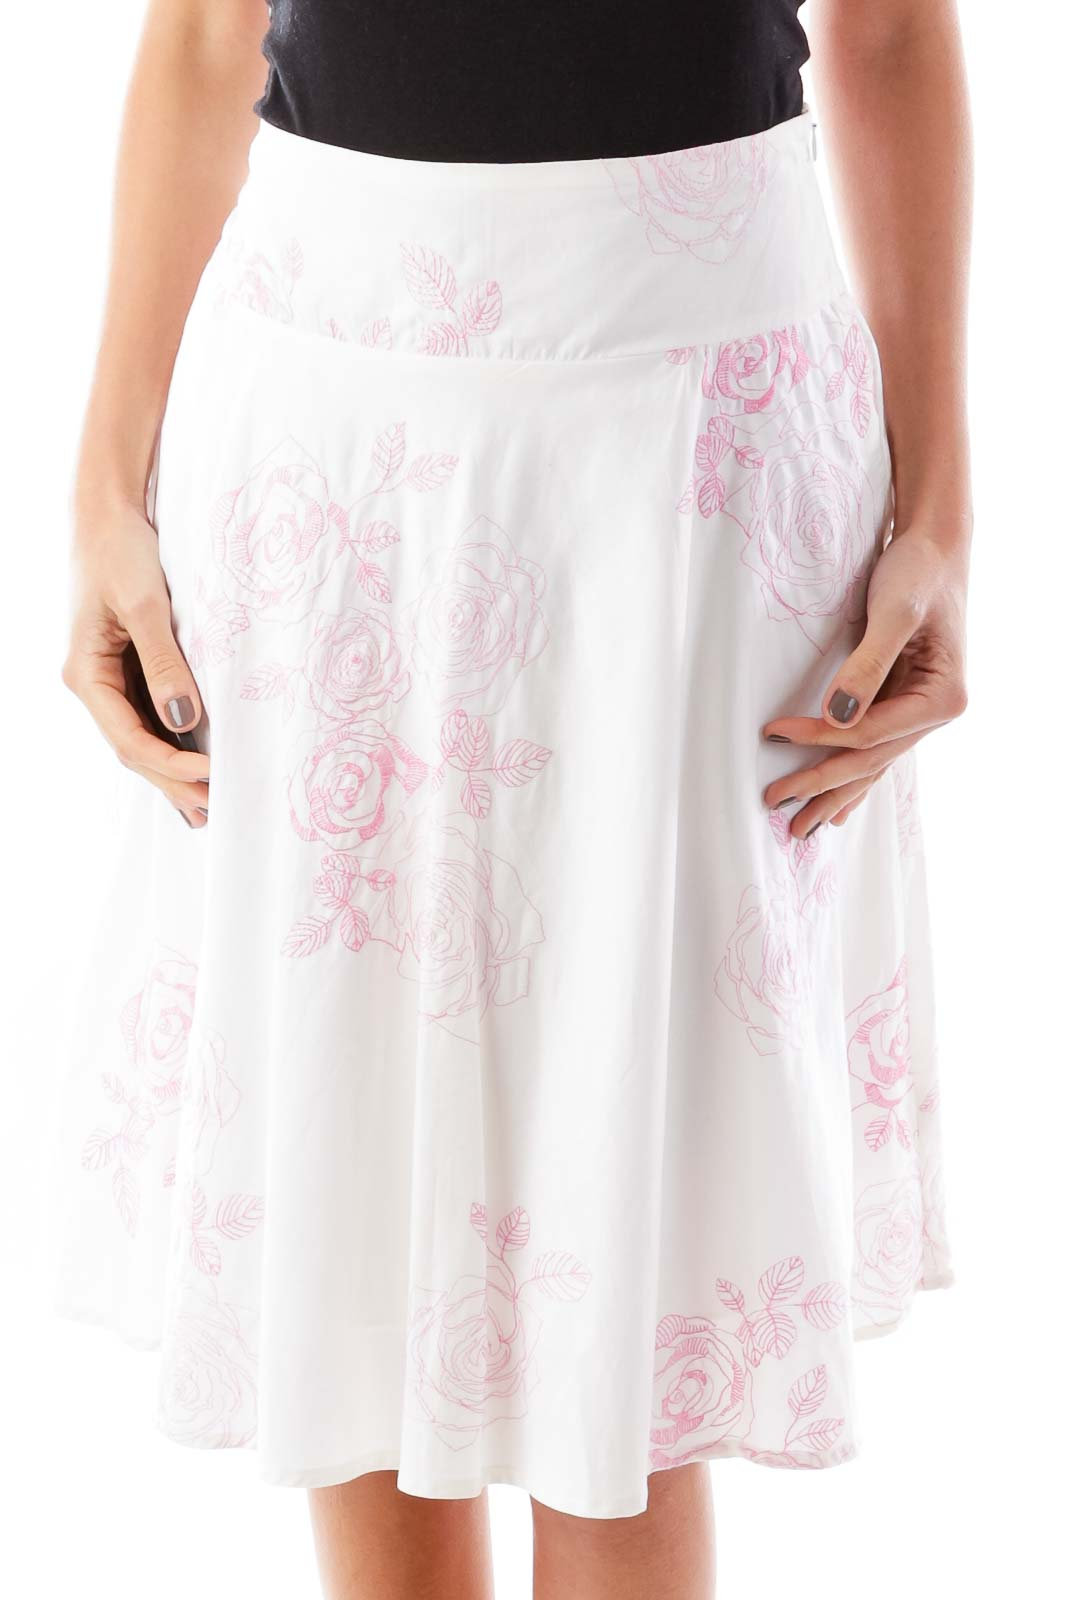 White pink embroidered floral skirt s silkroll white pink embroidered floral skirt mightylinksfo